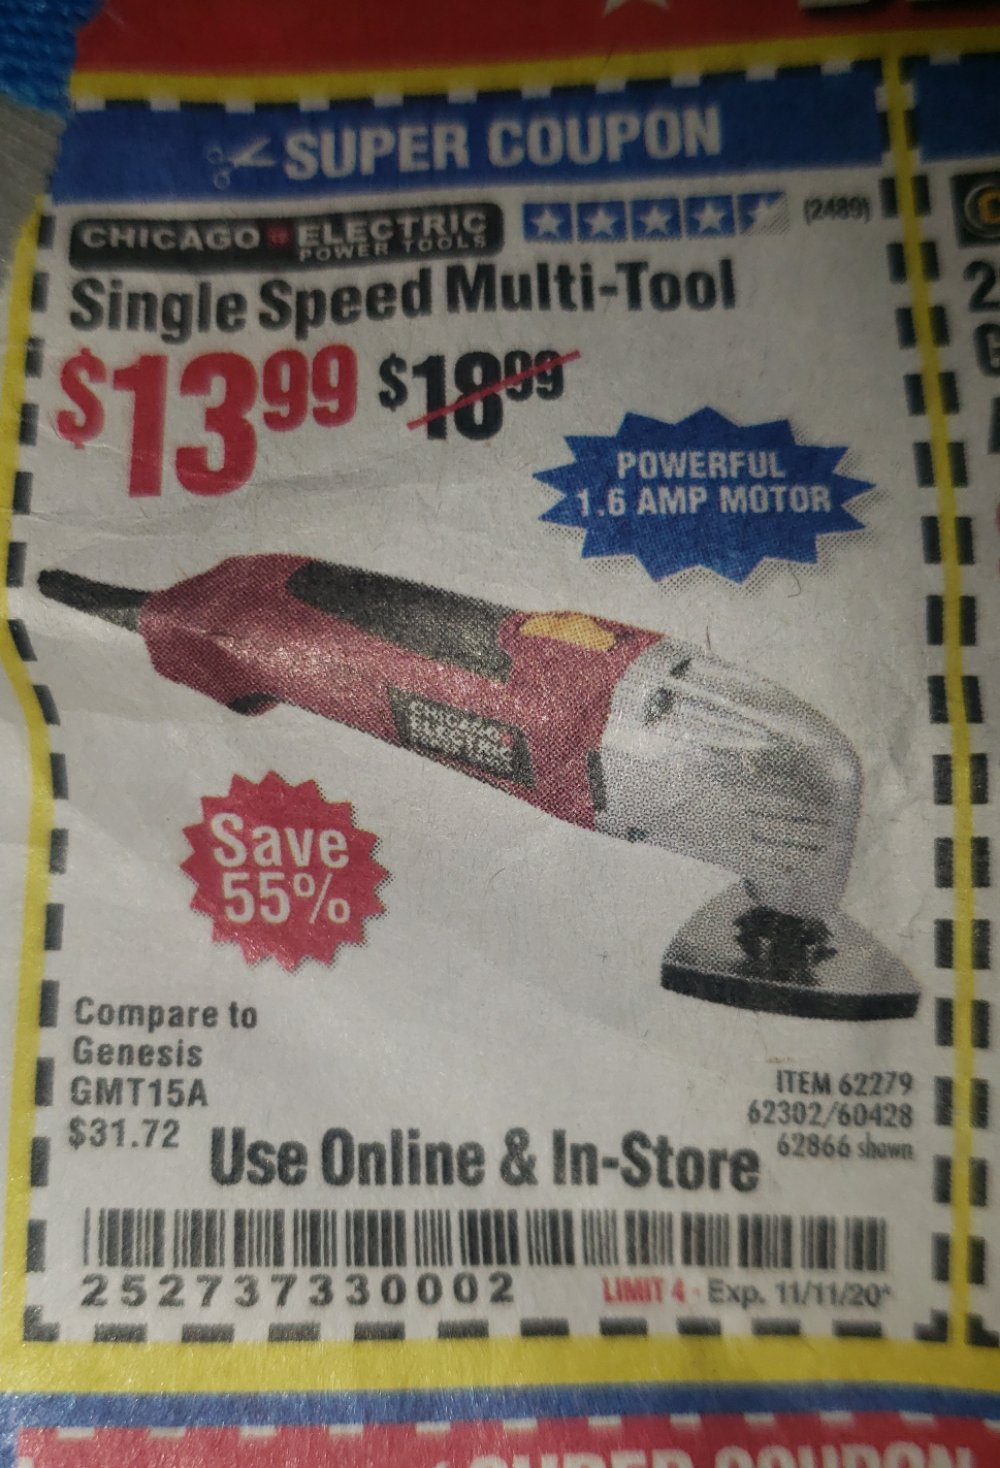 Harbor Freight Coupon, HF Coupons - Multifunction Power Tool